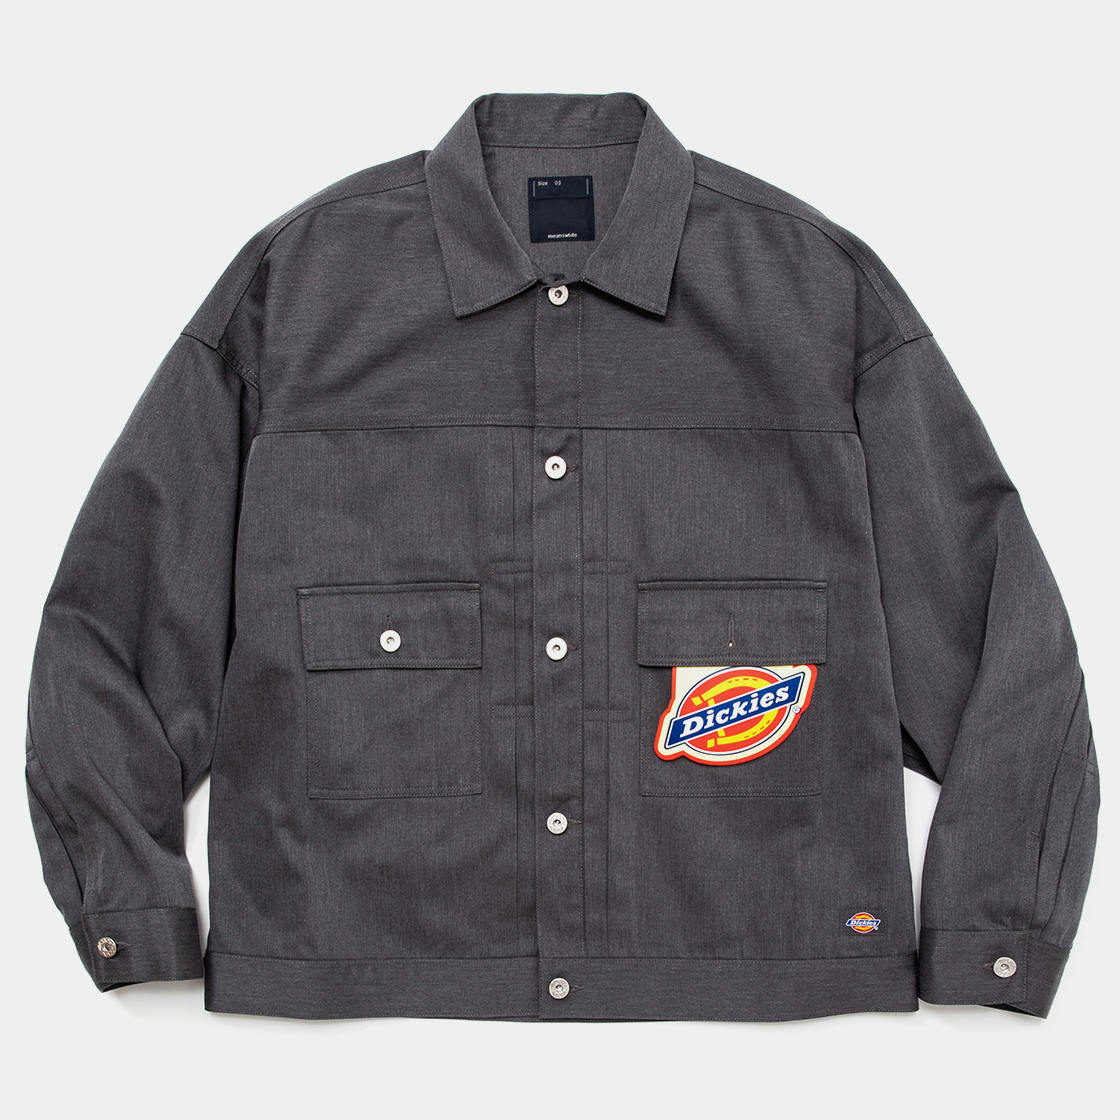 Pleated Sleeve Blouse×Dickies® / Charcoal